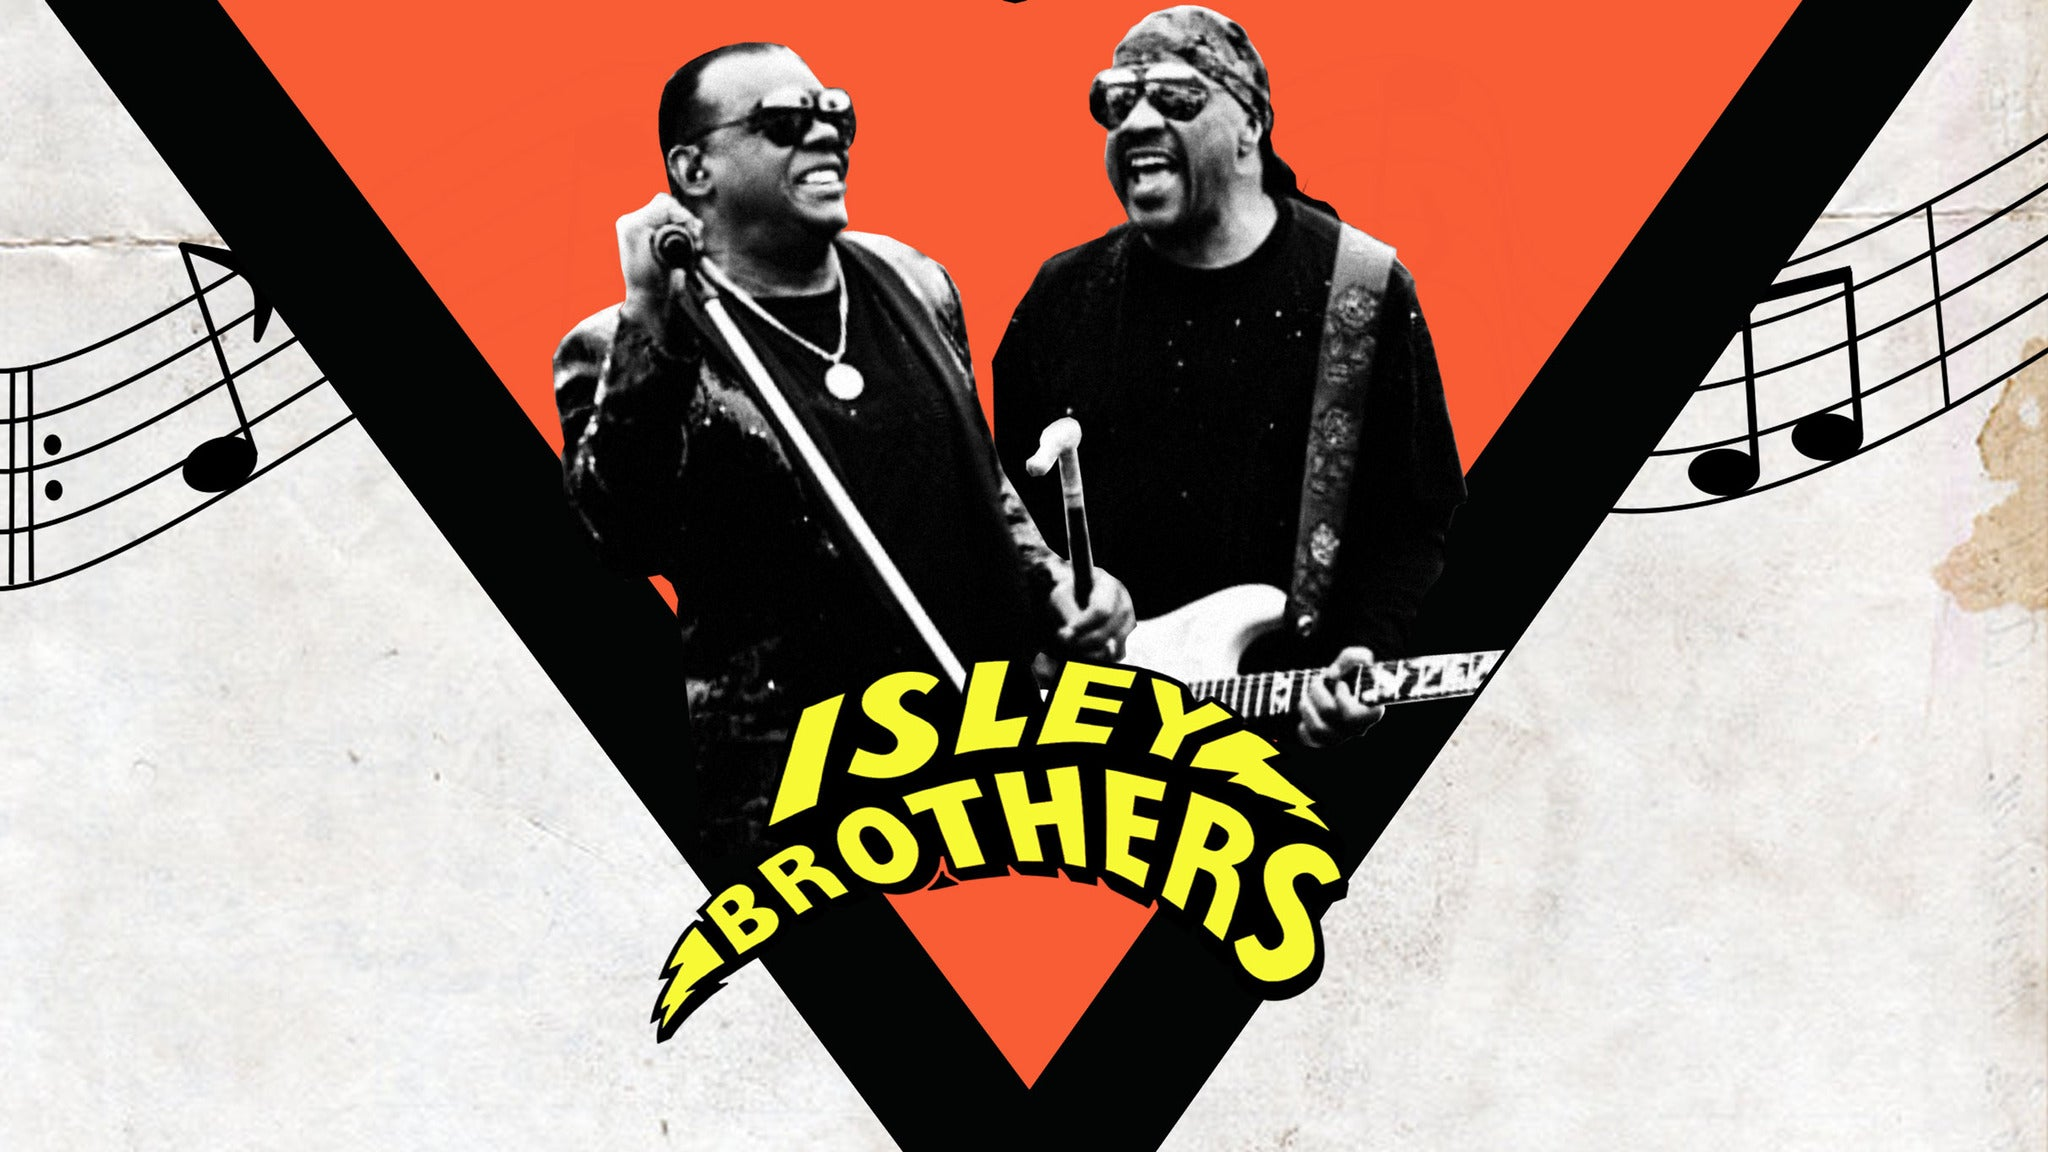 Isley Brothers and WAR